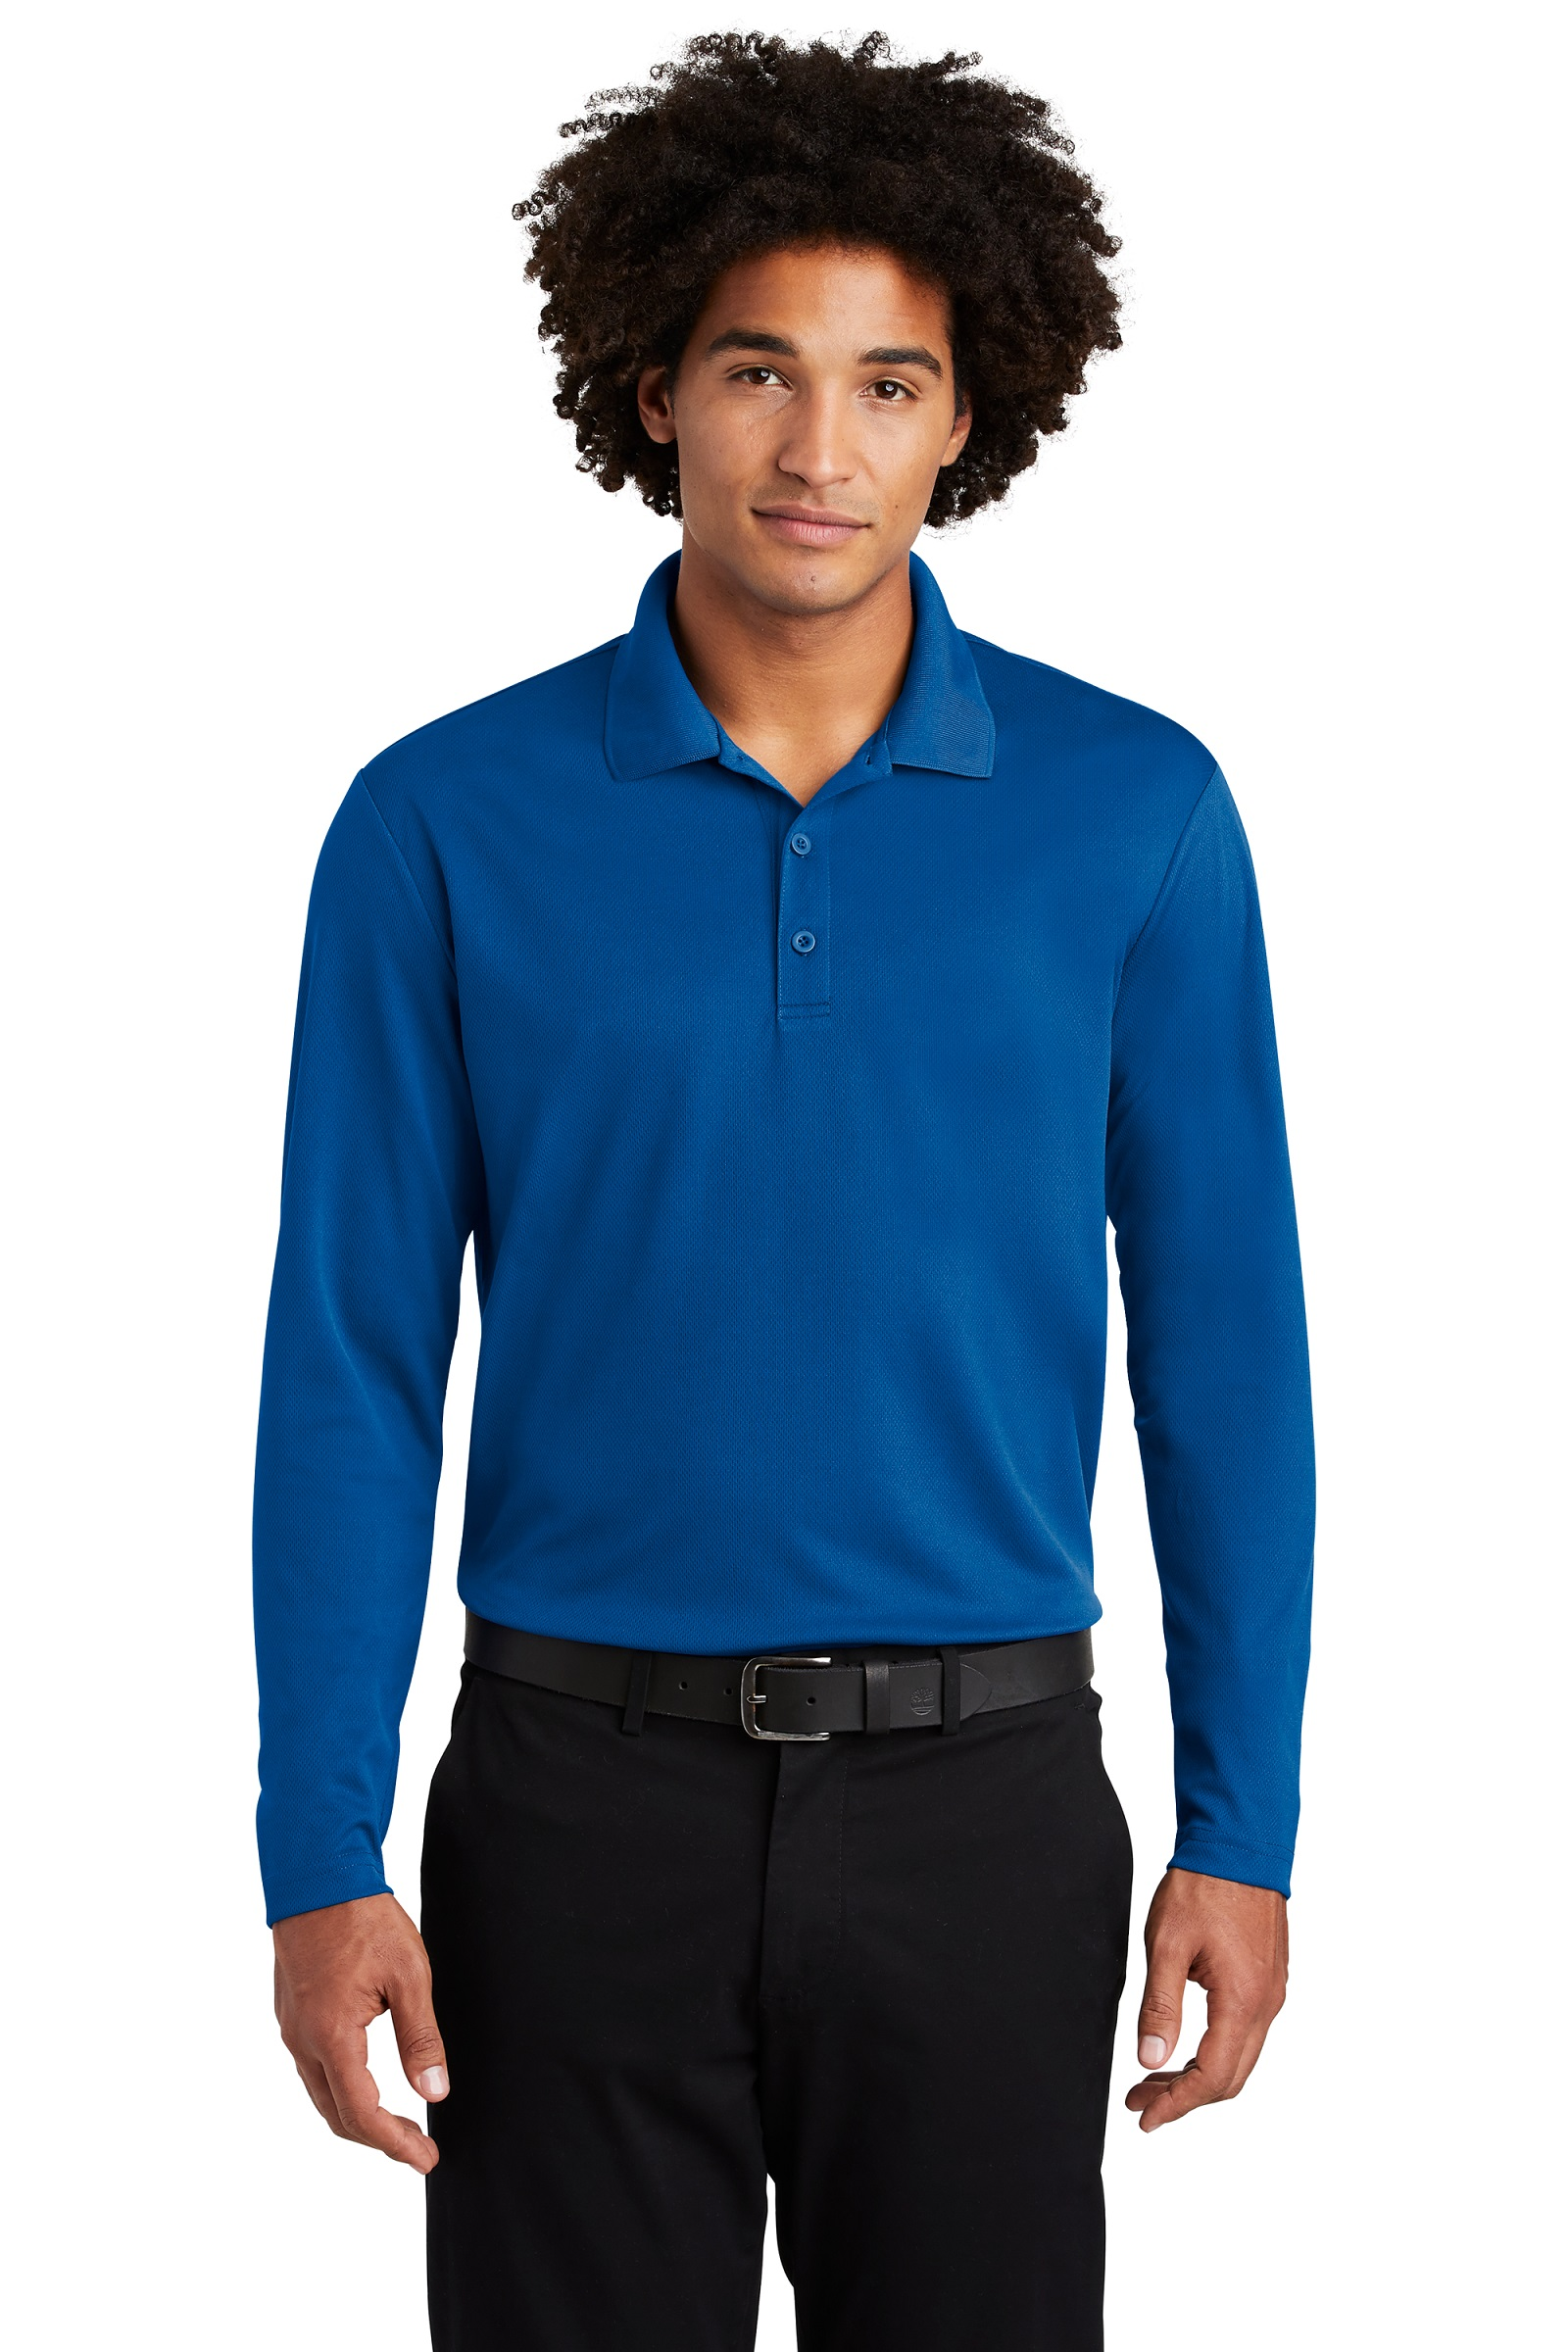 Sport-Tek Embroidered Men's 100% Performance RacerMesh Long Sleeve Polo